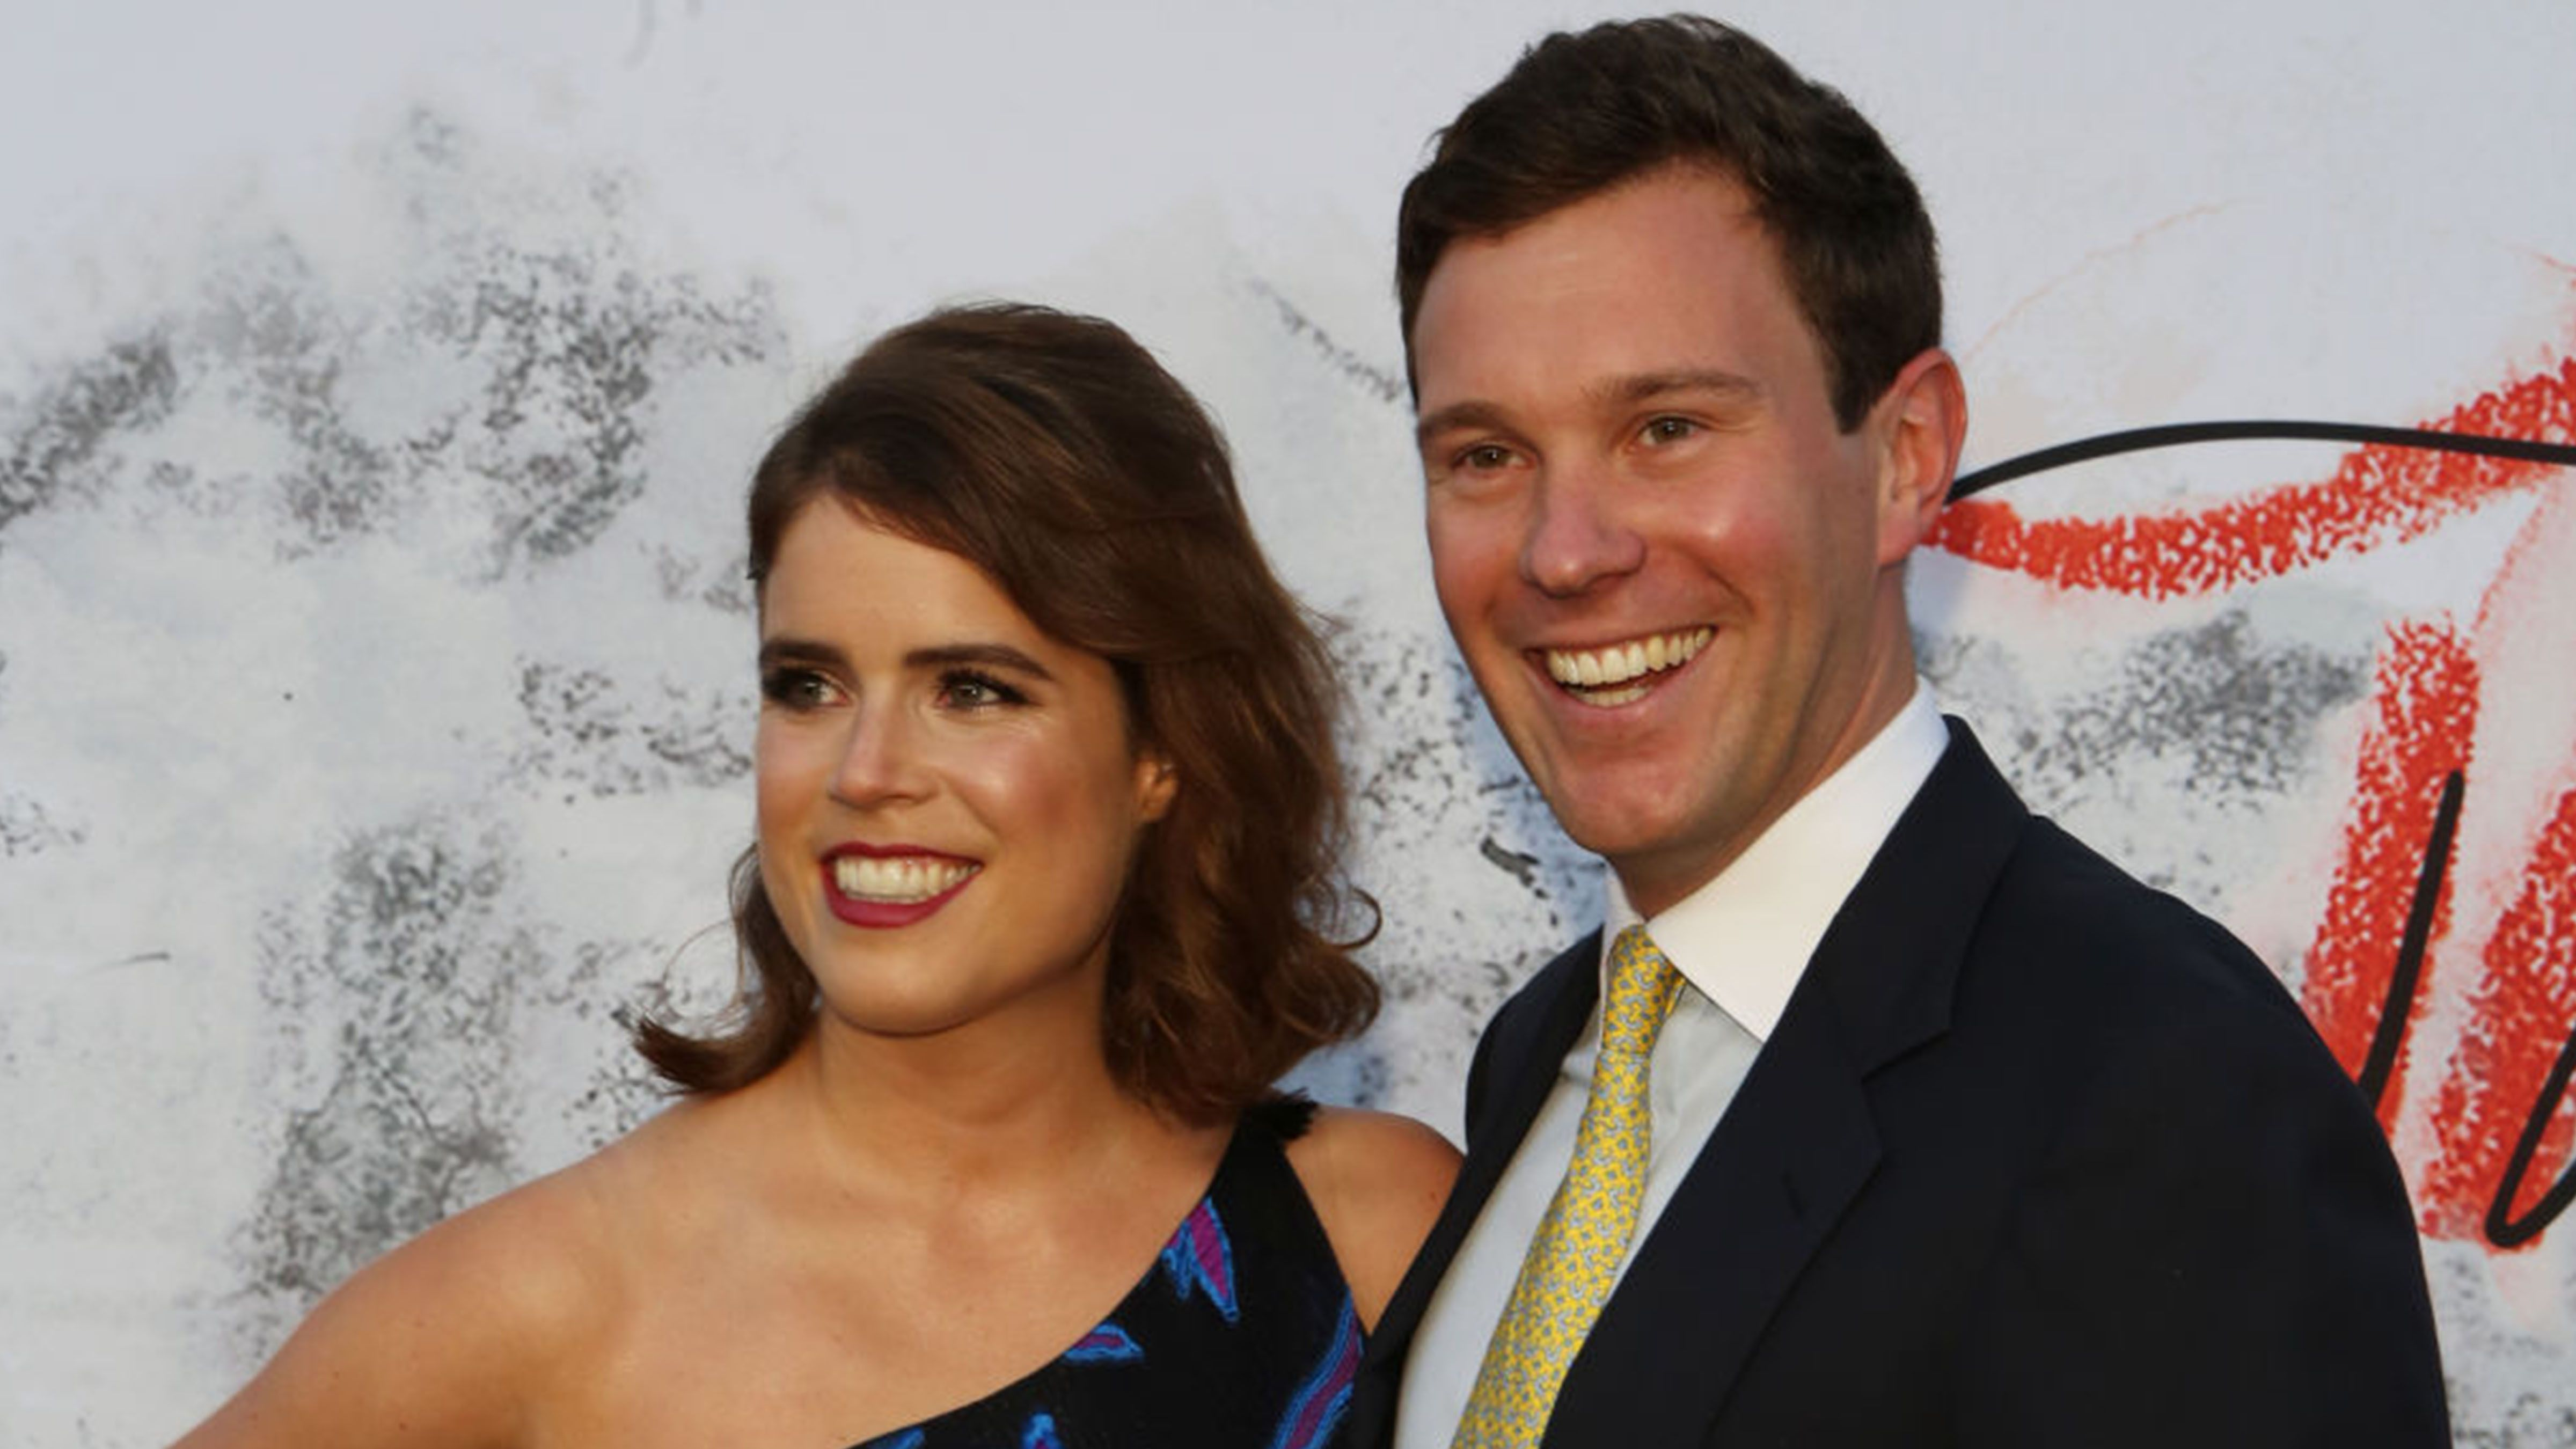 Princess Eugenie Celebrates Her One Year Anniversary With a Sweet Instagram Post